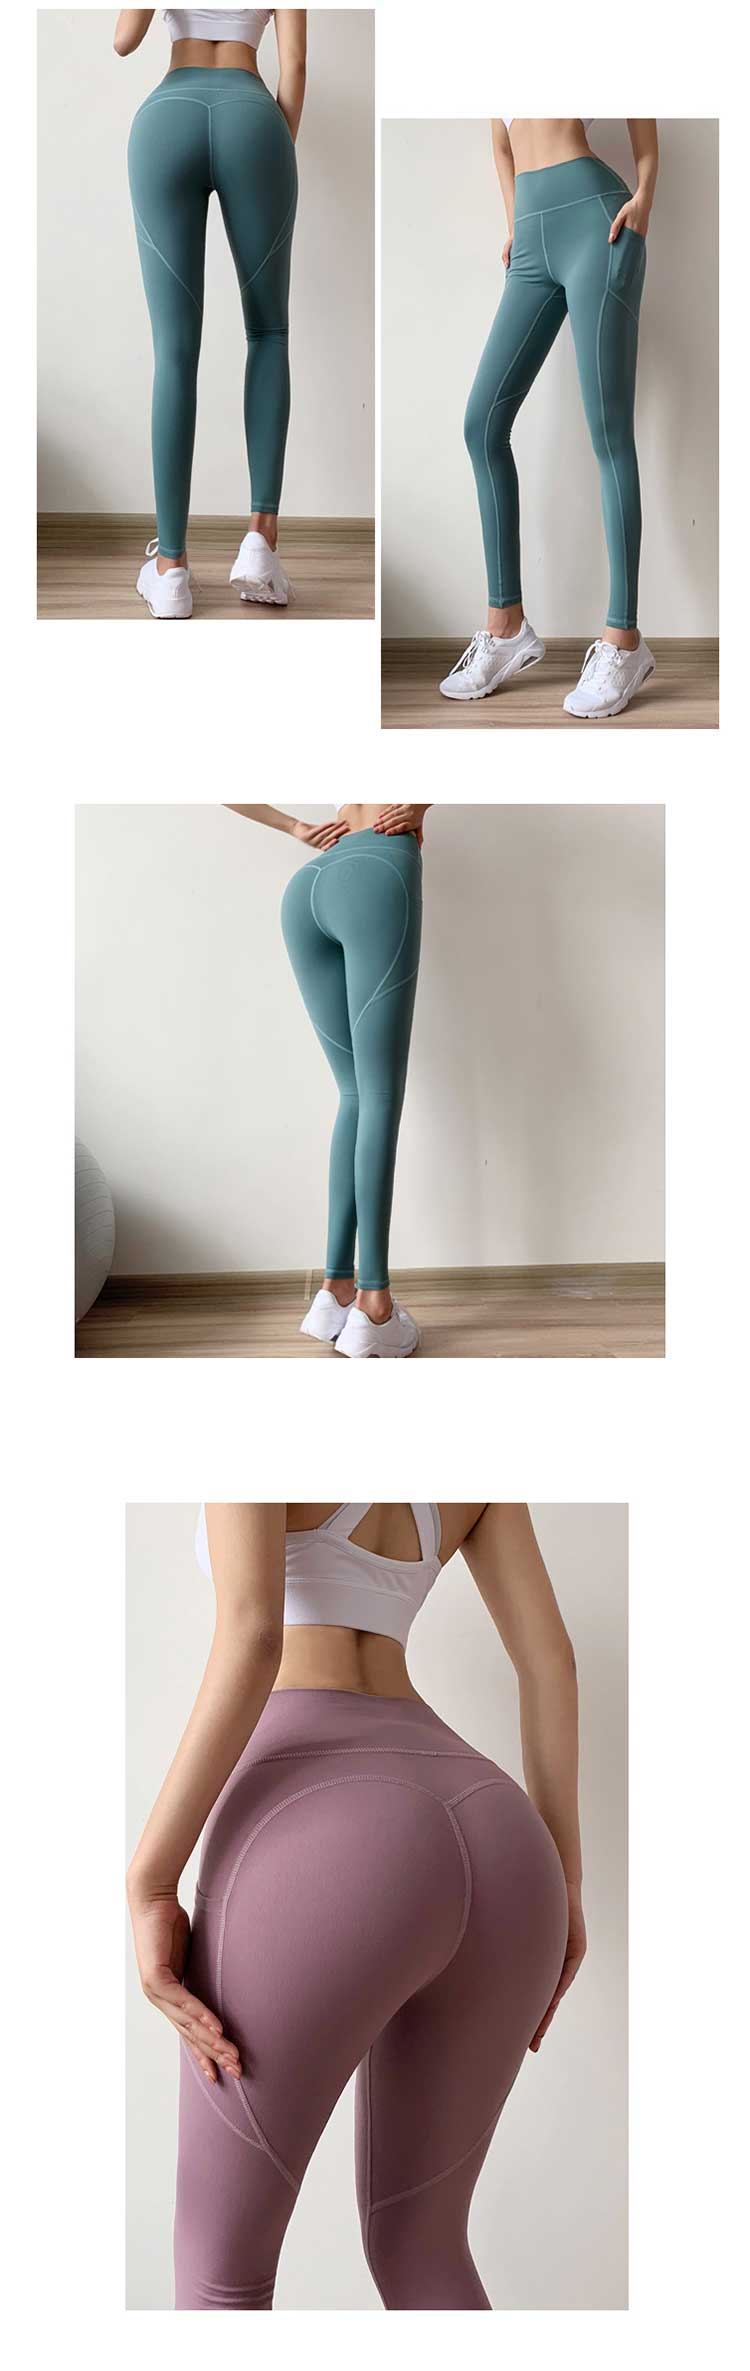 which-makes-comfortable-after-putting-on-without-tightening